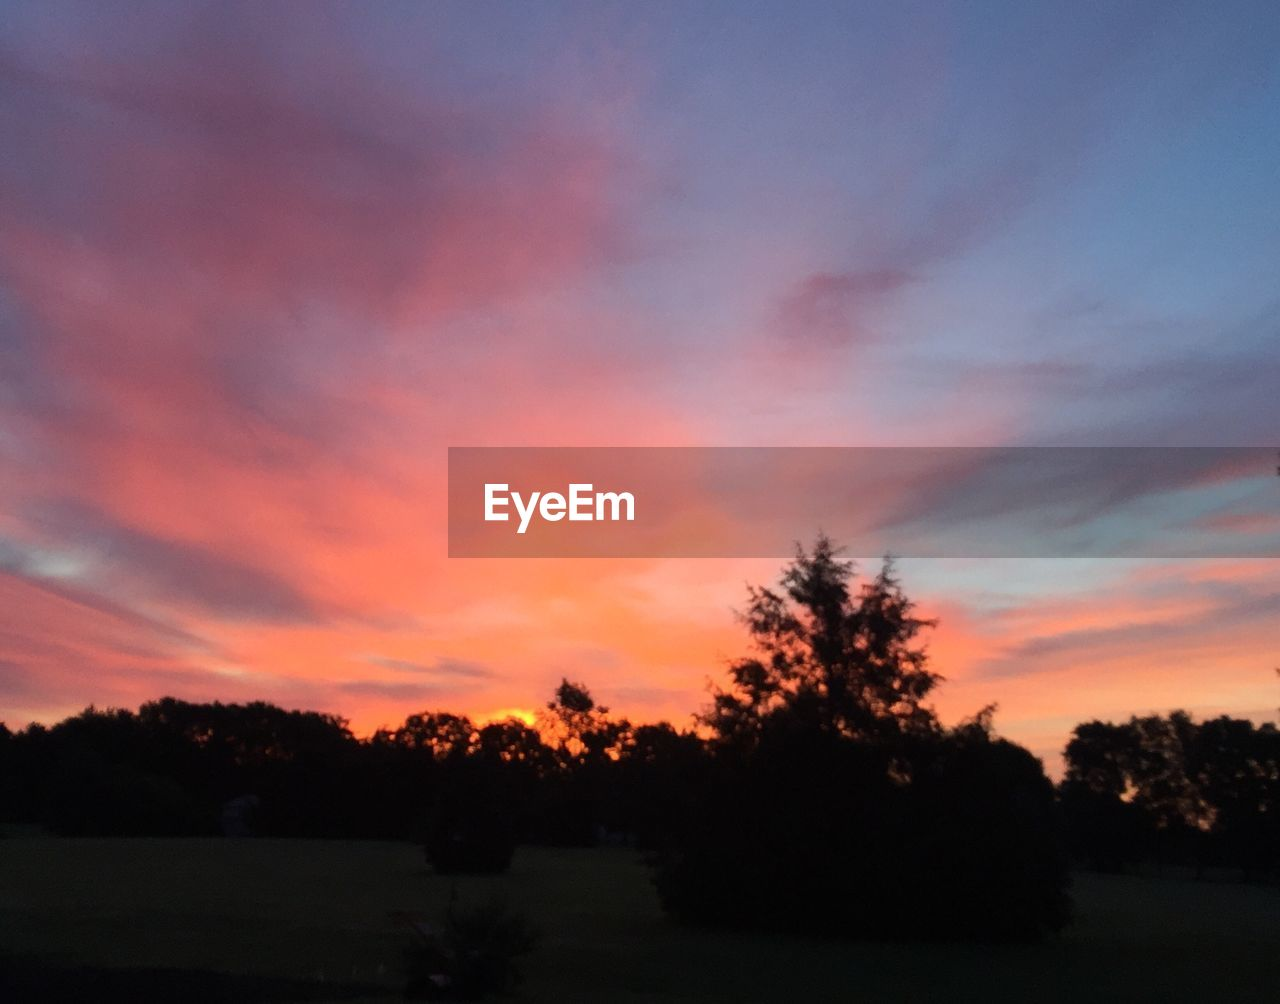 sunset, sky, tree, plant, silhouette, beauty in nature, cloud - sky, tranquility, scenics - nature, tranquil scene, orange color, nature, no people, landscape, environment, outdoors, growth, field, non-urban scene, idyllic, romantic sky